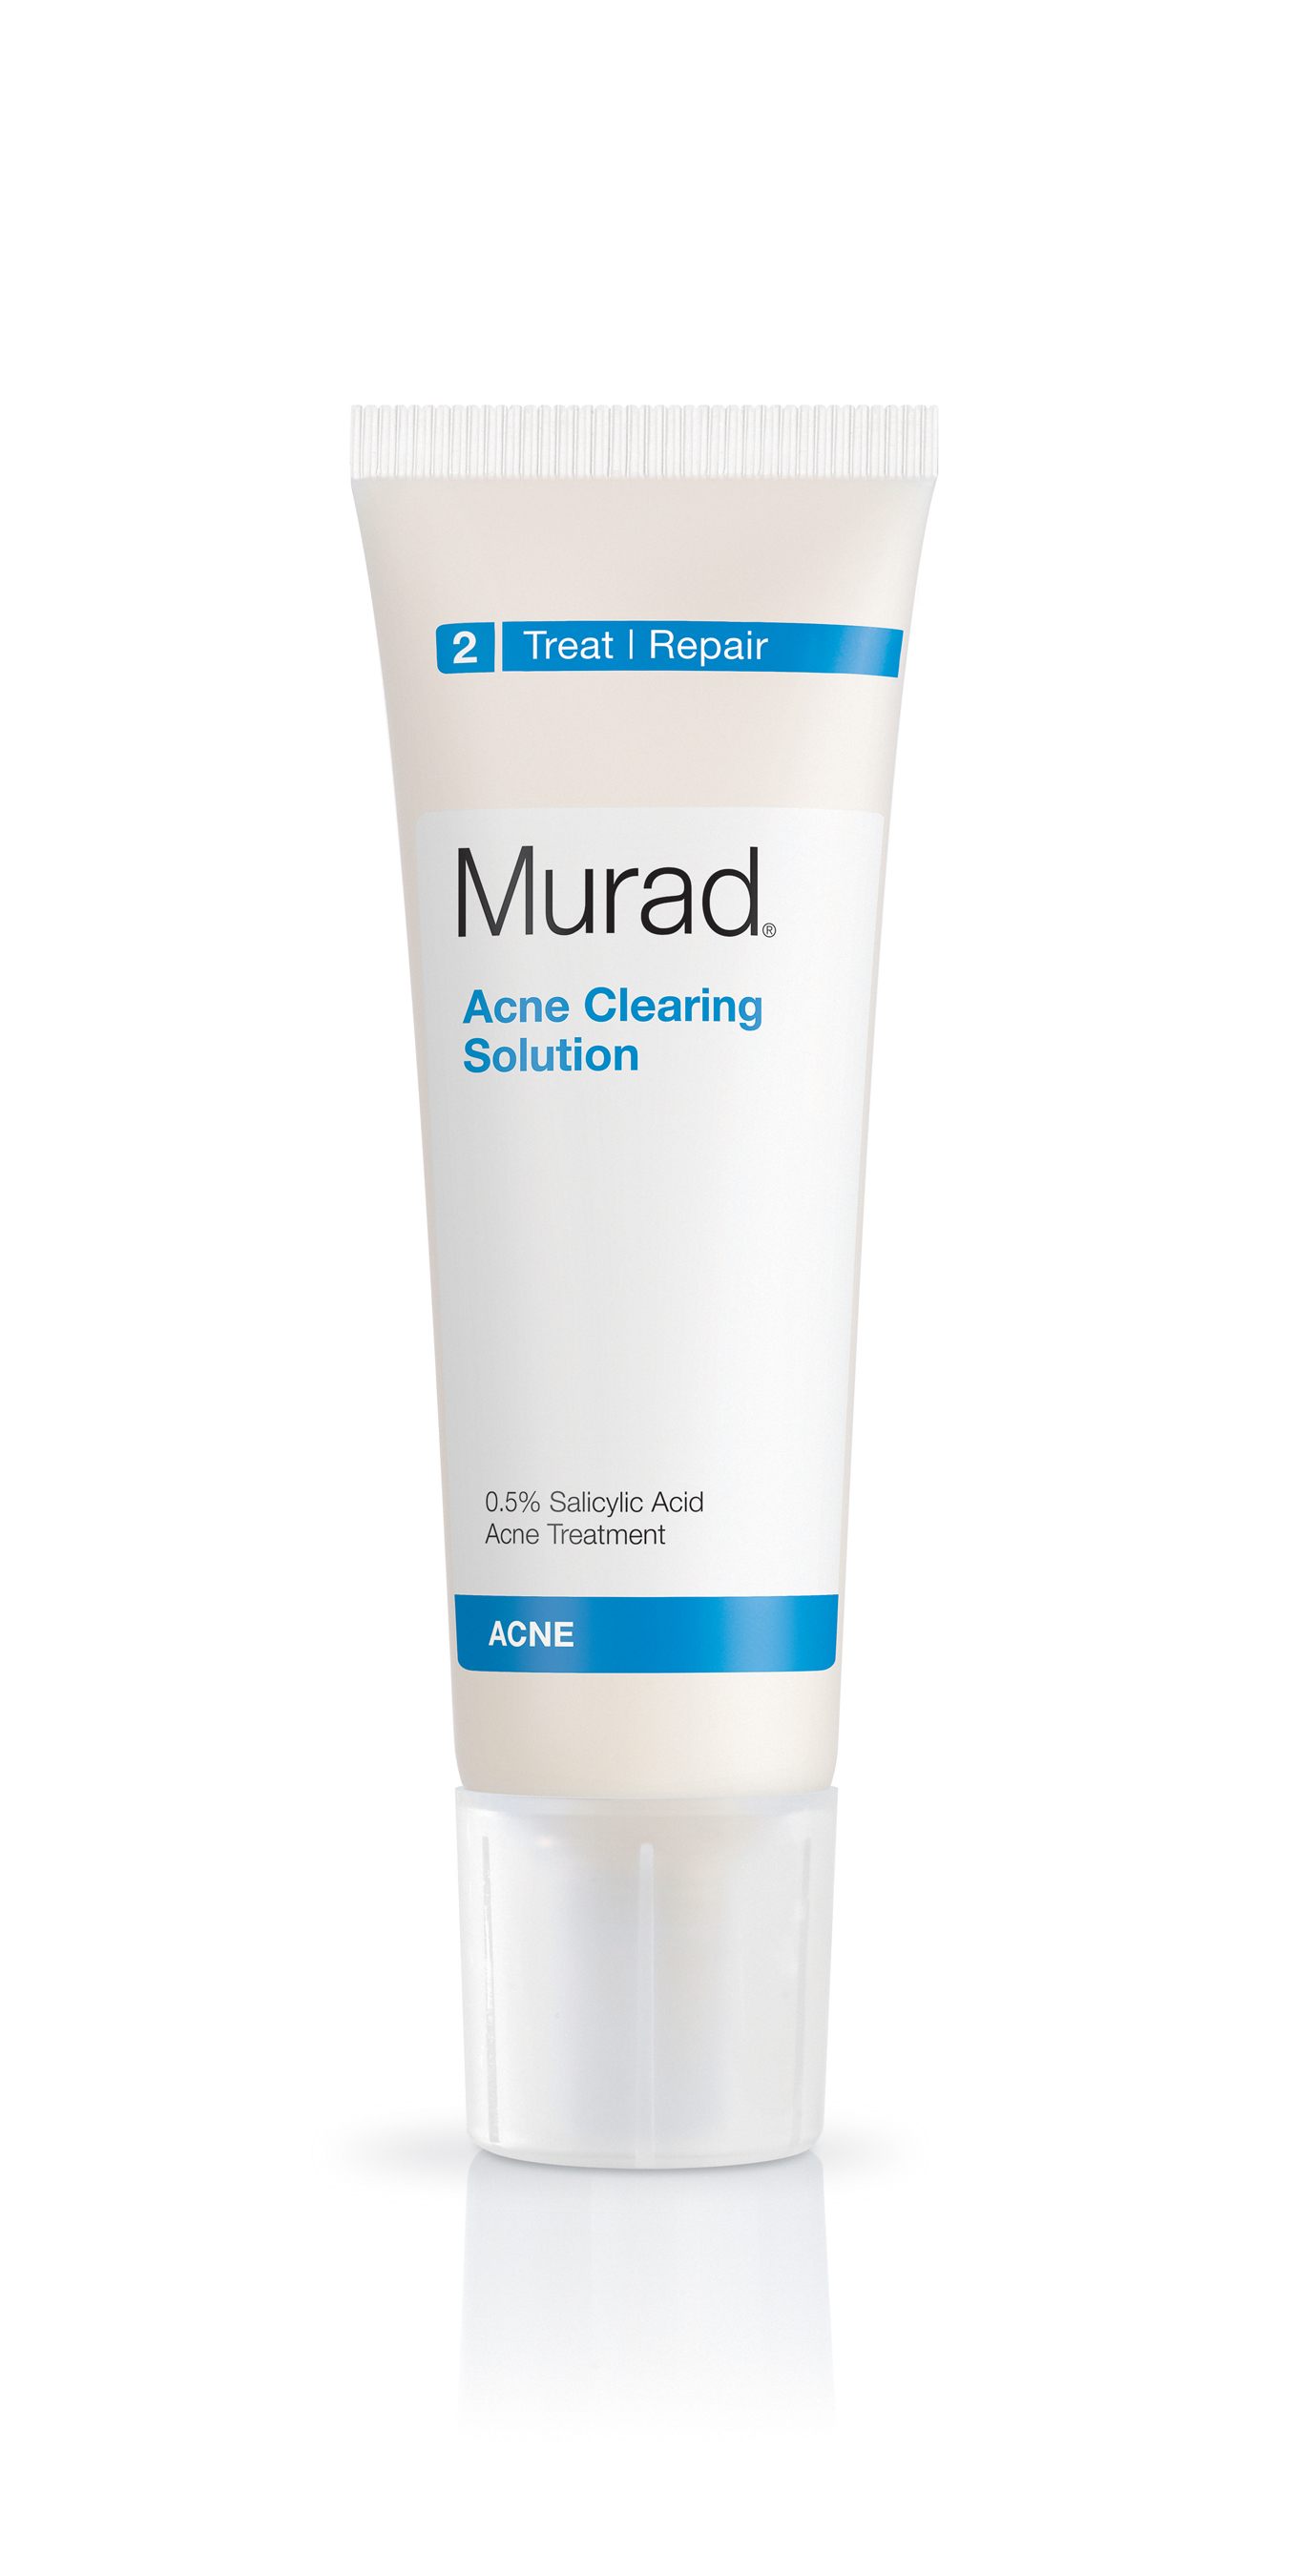 Murad Acne Clearing Solution (Photo: Business Wire)